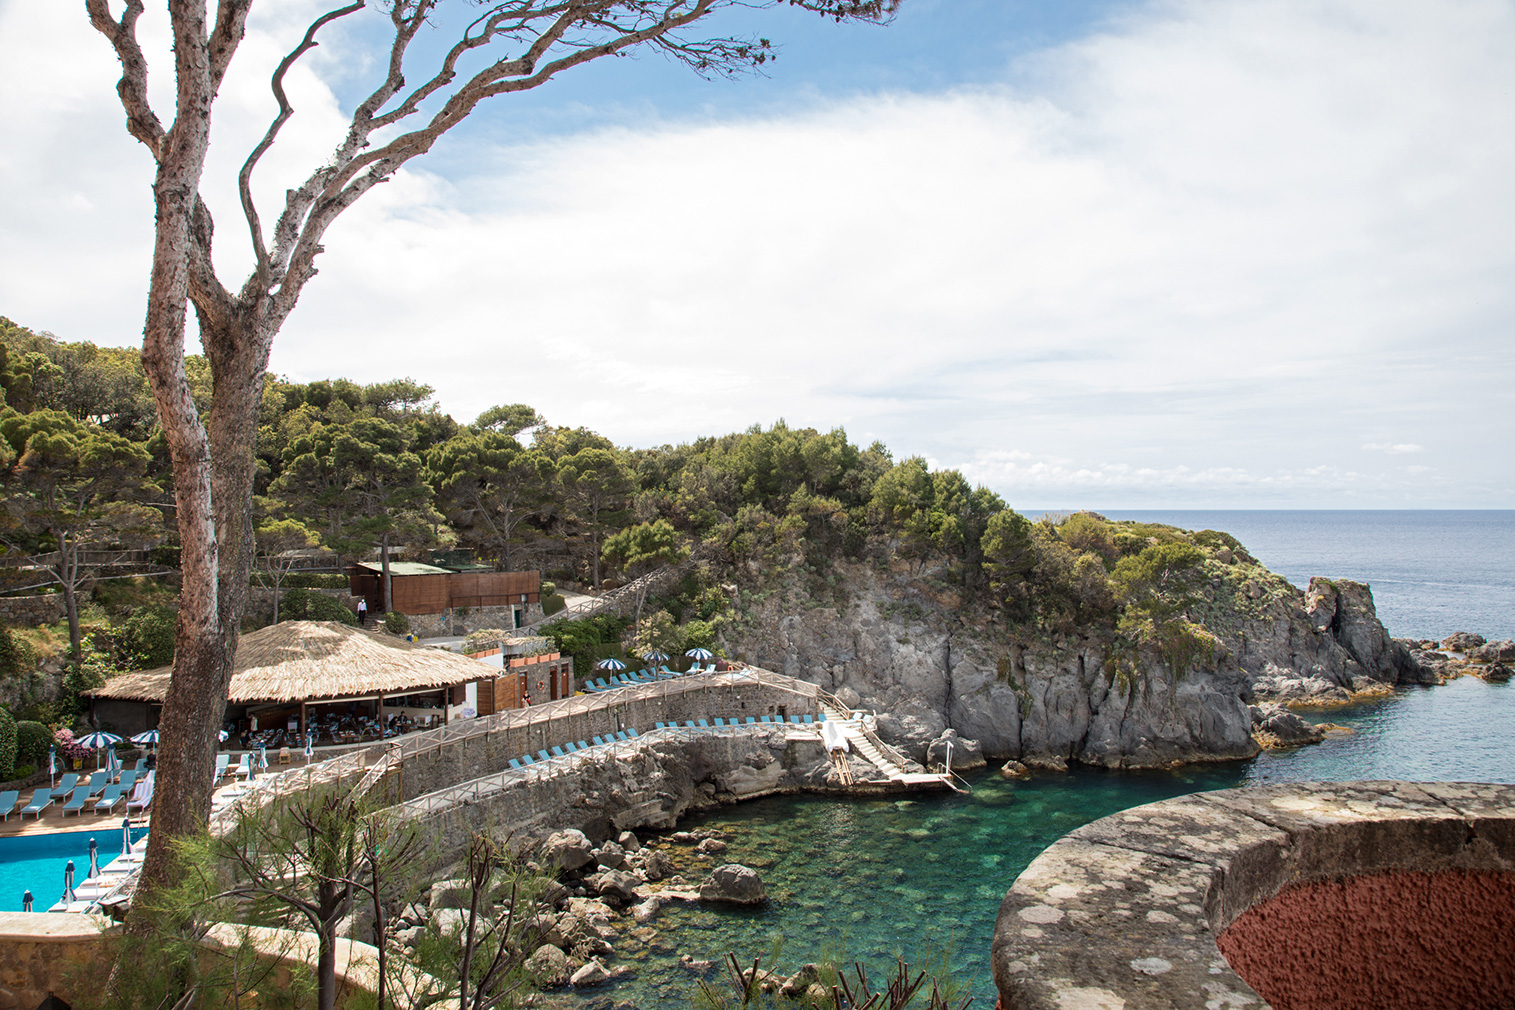 Il Mezzatorre hotel has both outdoor and indoor pools, and a beach club